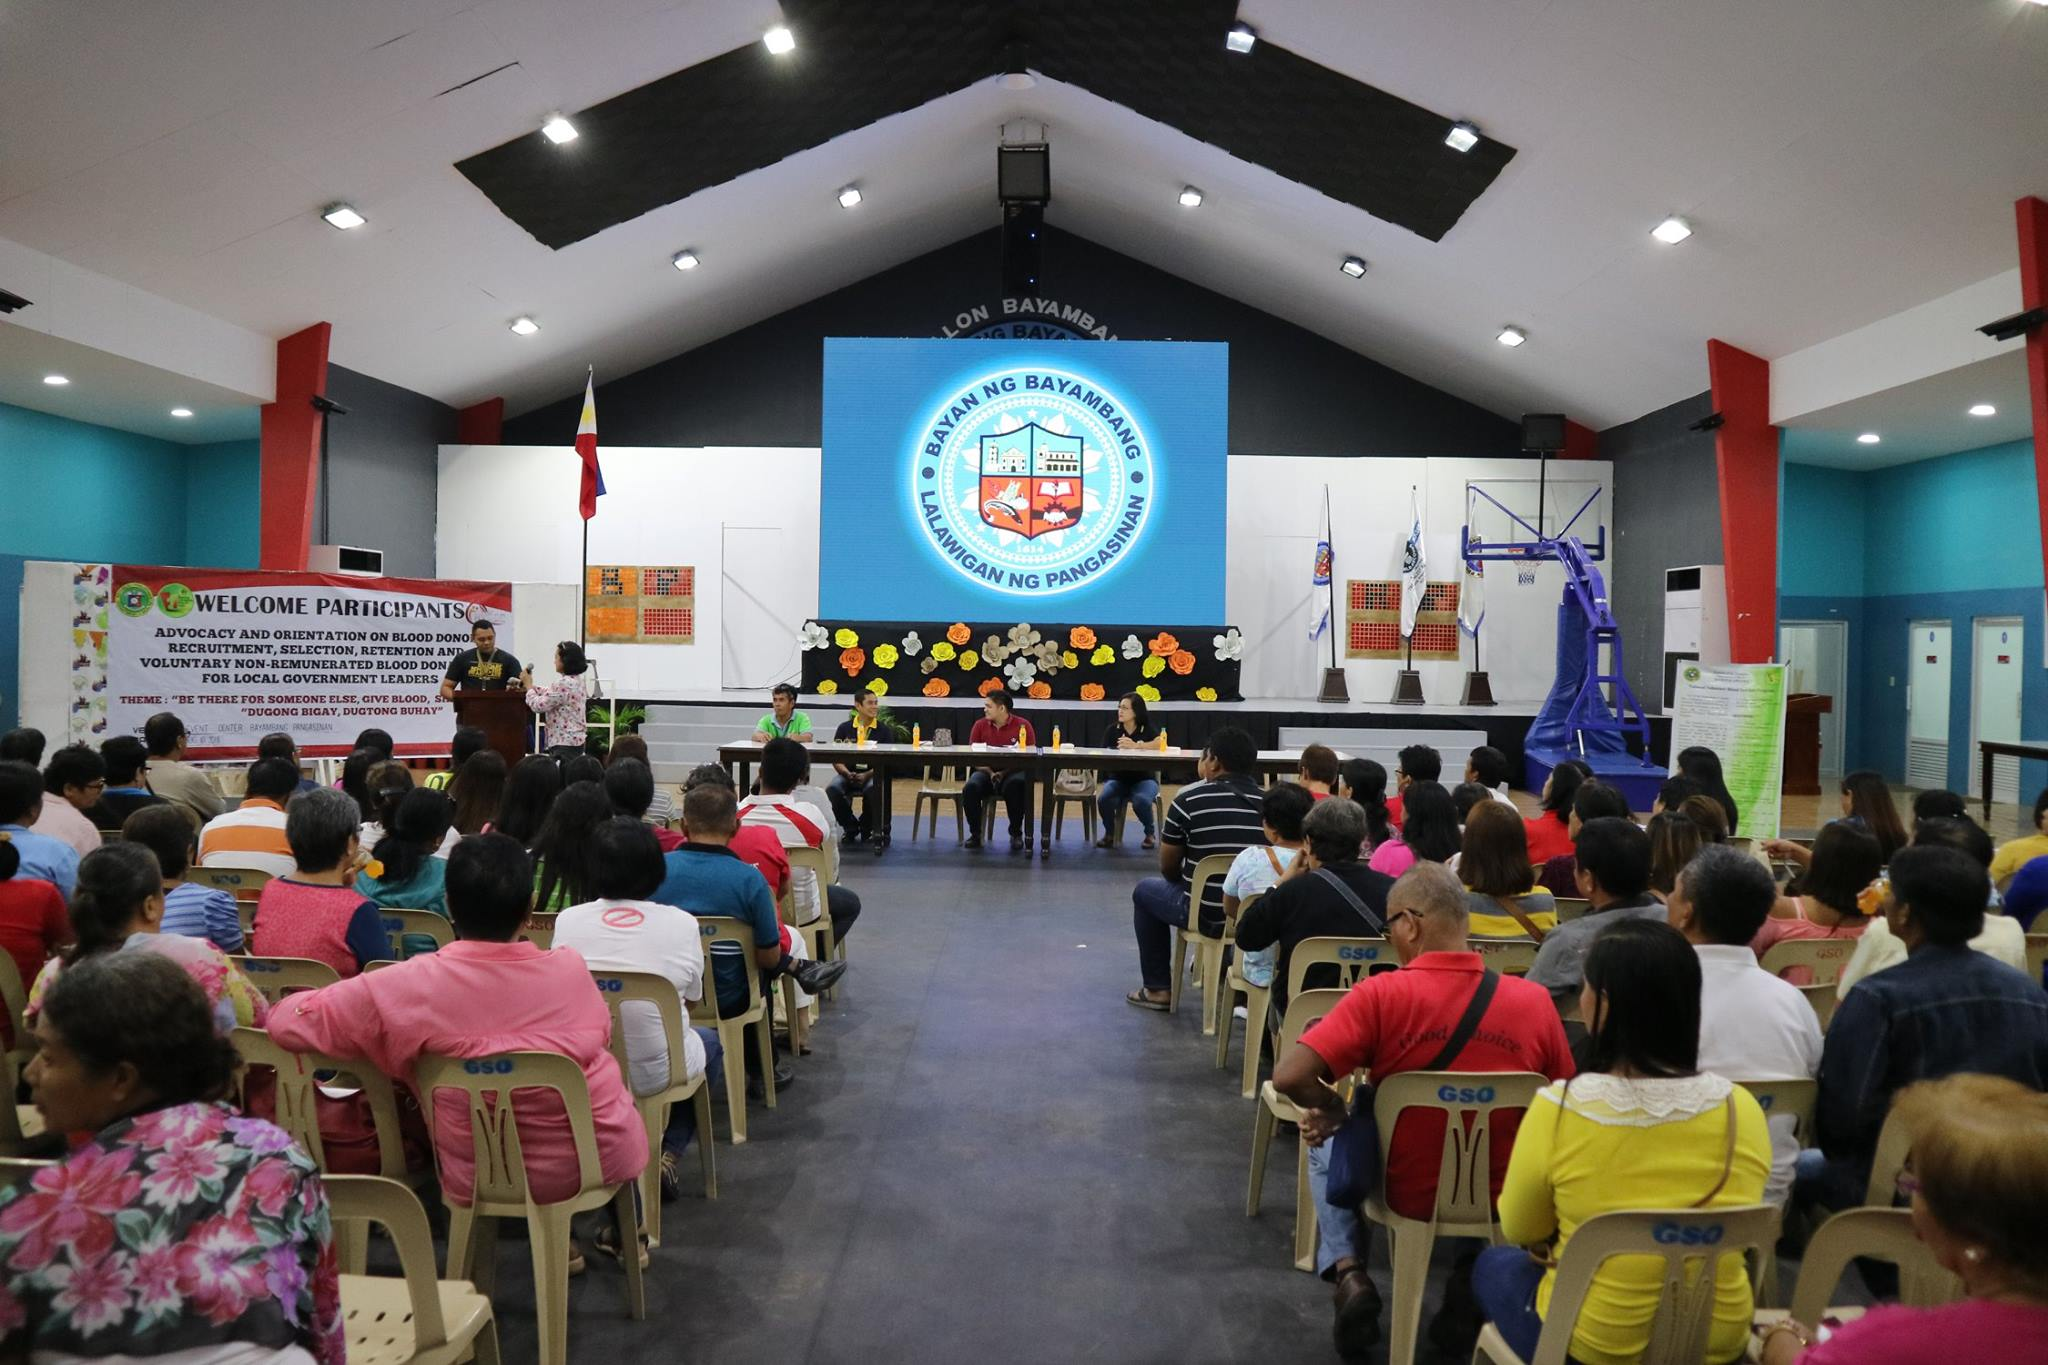 DOH conducts Orientation on Blood Donation Recruitment for barangay officials, BHWs and midwives